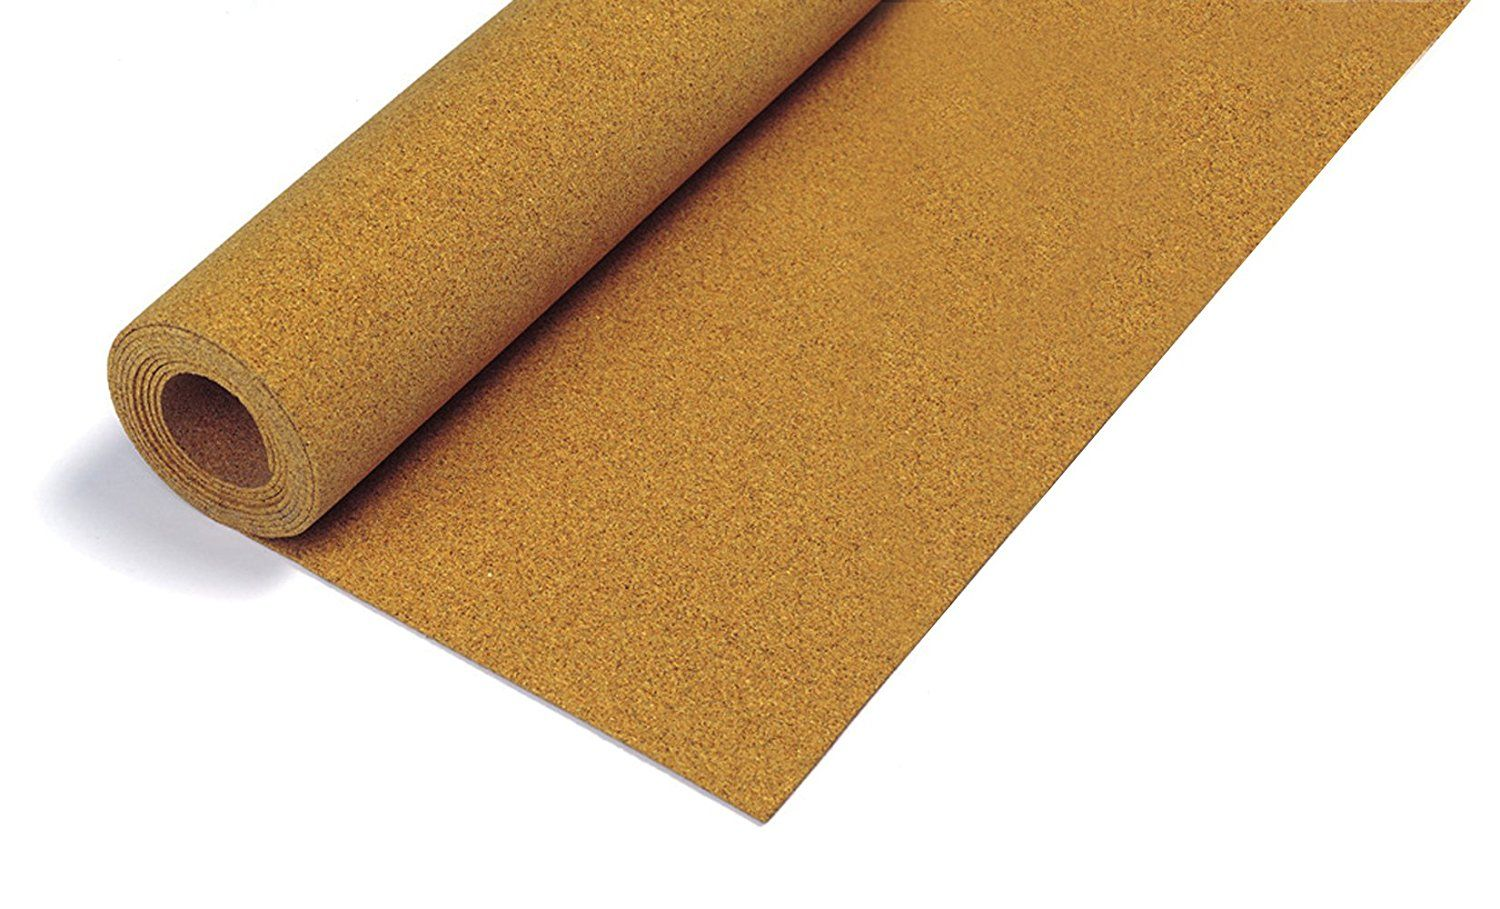 Qep 72000q Natural Cork Underlayment 1 X2f 4 Inch Roll Carpet Underlayments Amazon Com Cork Underlayment Underlayment Black Friday Tools